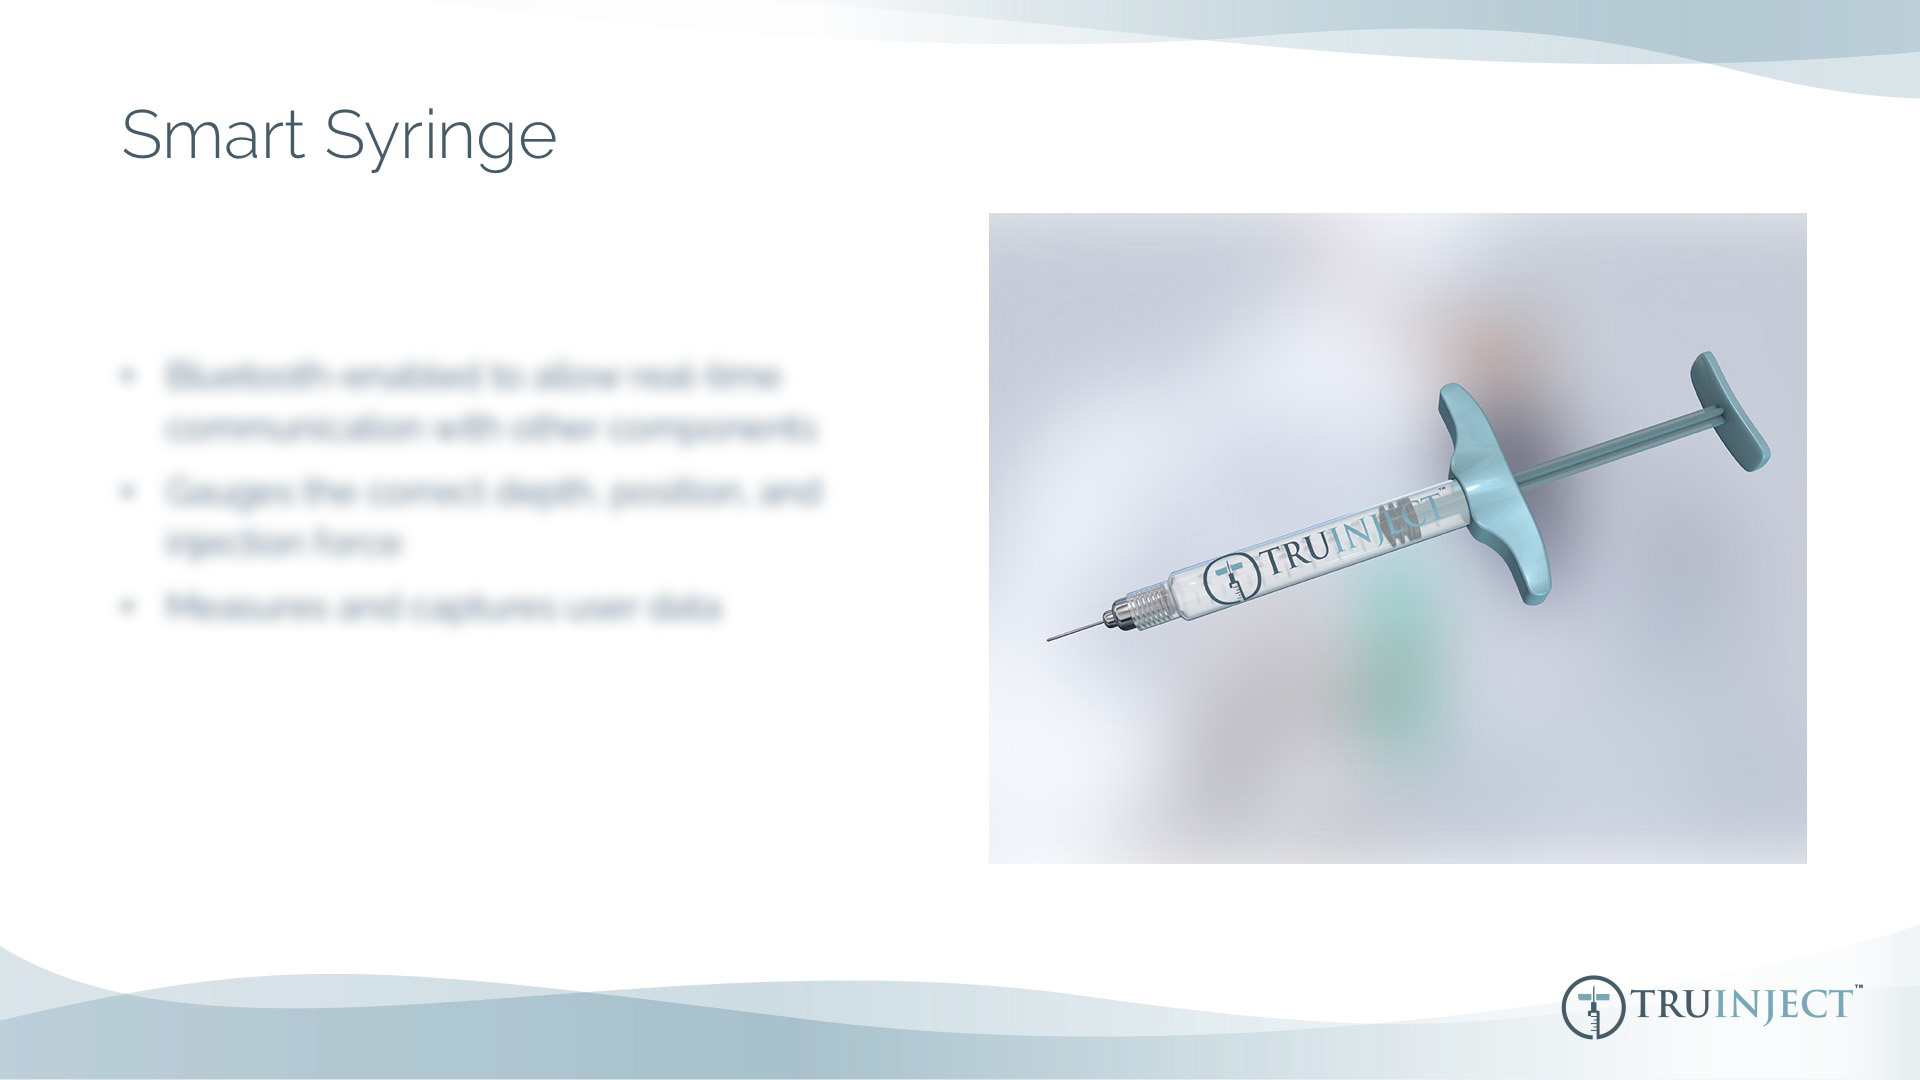 Truinject Corporate Deck - Smart Syringe